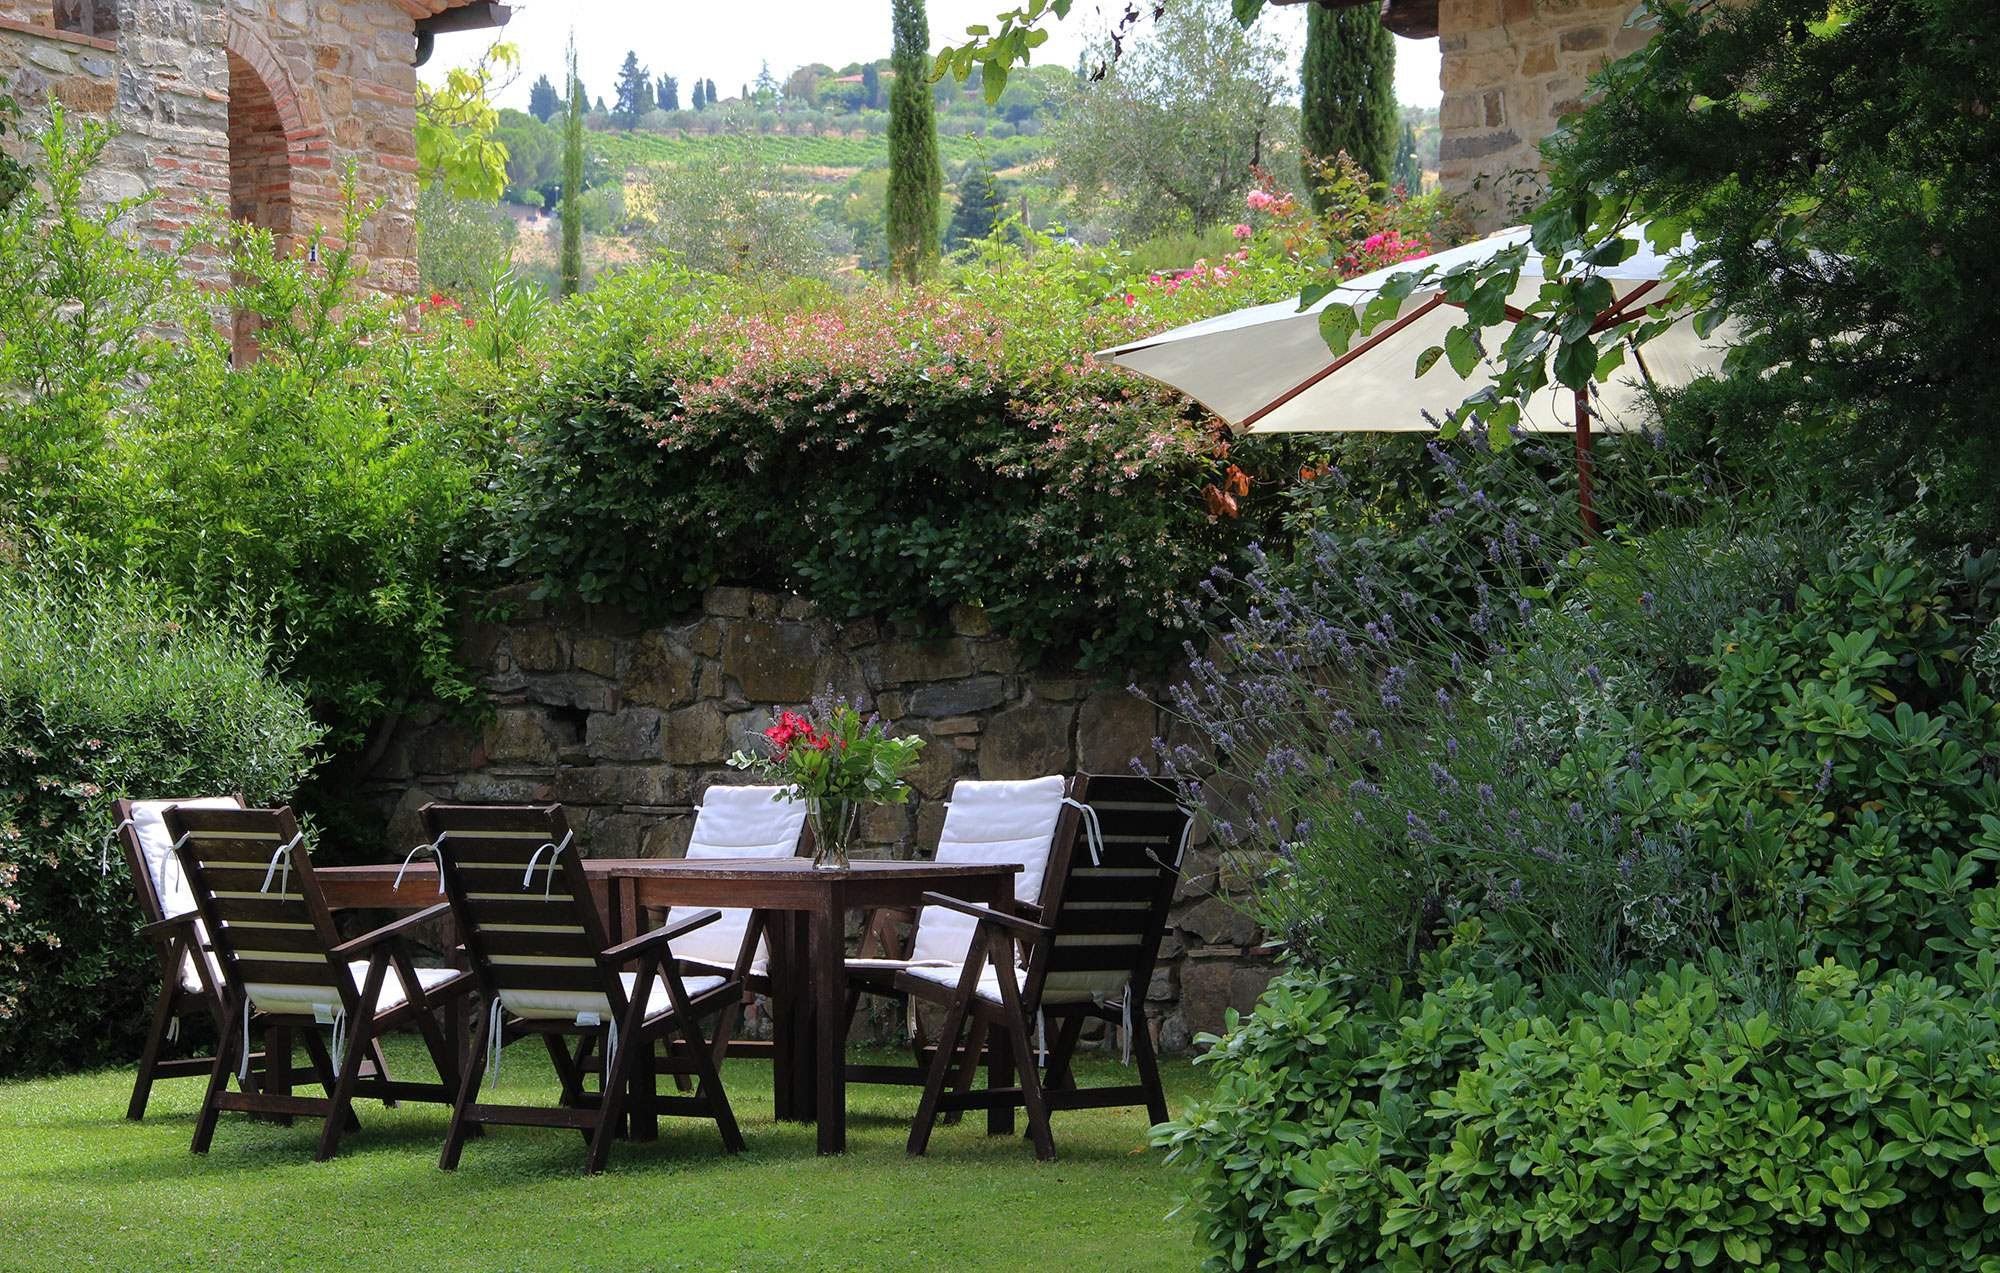 Casa Ferruzzi 2, 3 bedroom apartment in Chianti & Countryside, Tuscany Photo #12